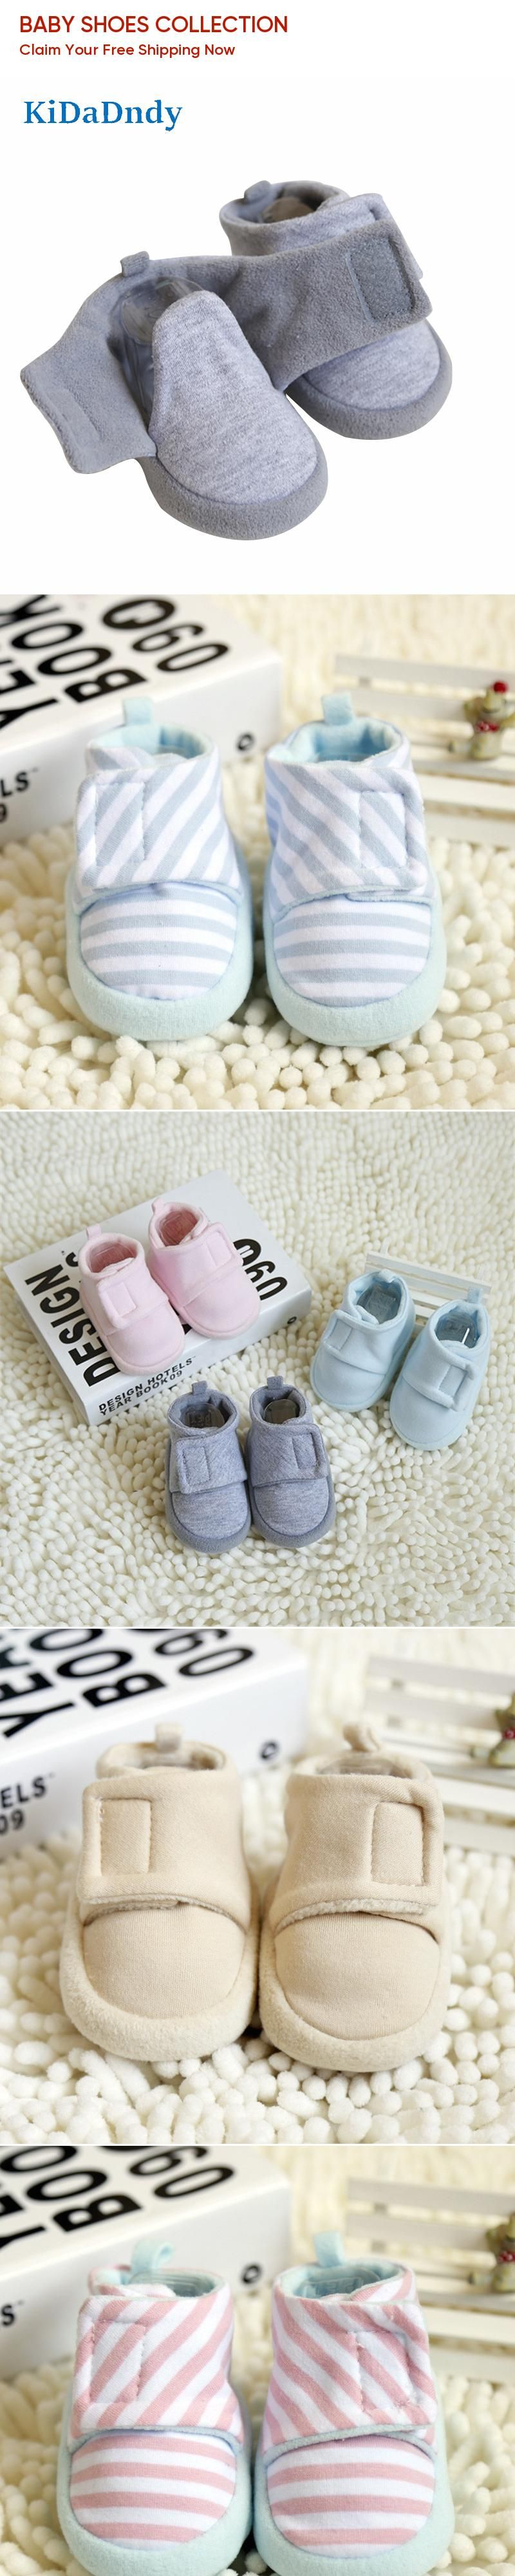 2017 autumn new 0-1 year old baby shoes soft bottom fleece baby shoes newborn feet anti-shoes GXJ095